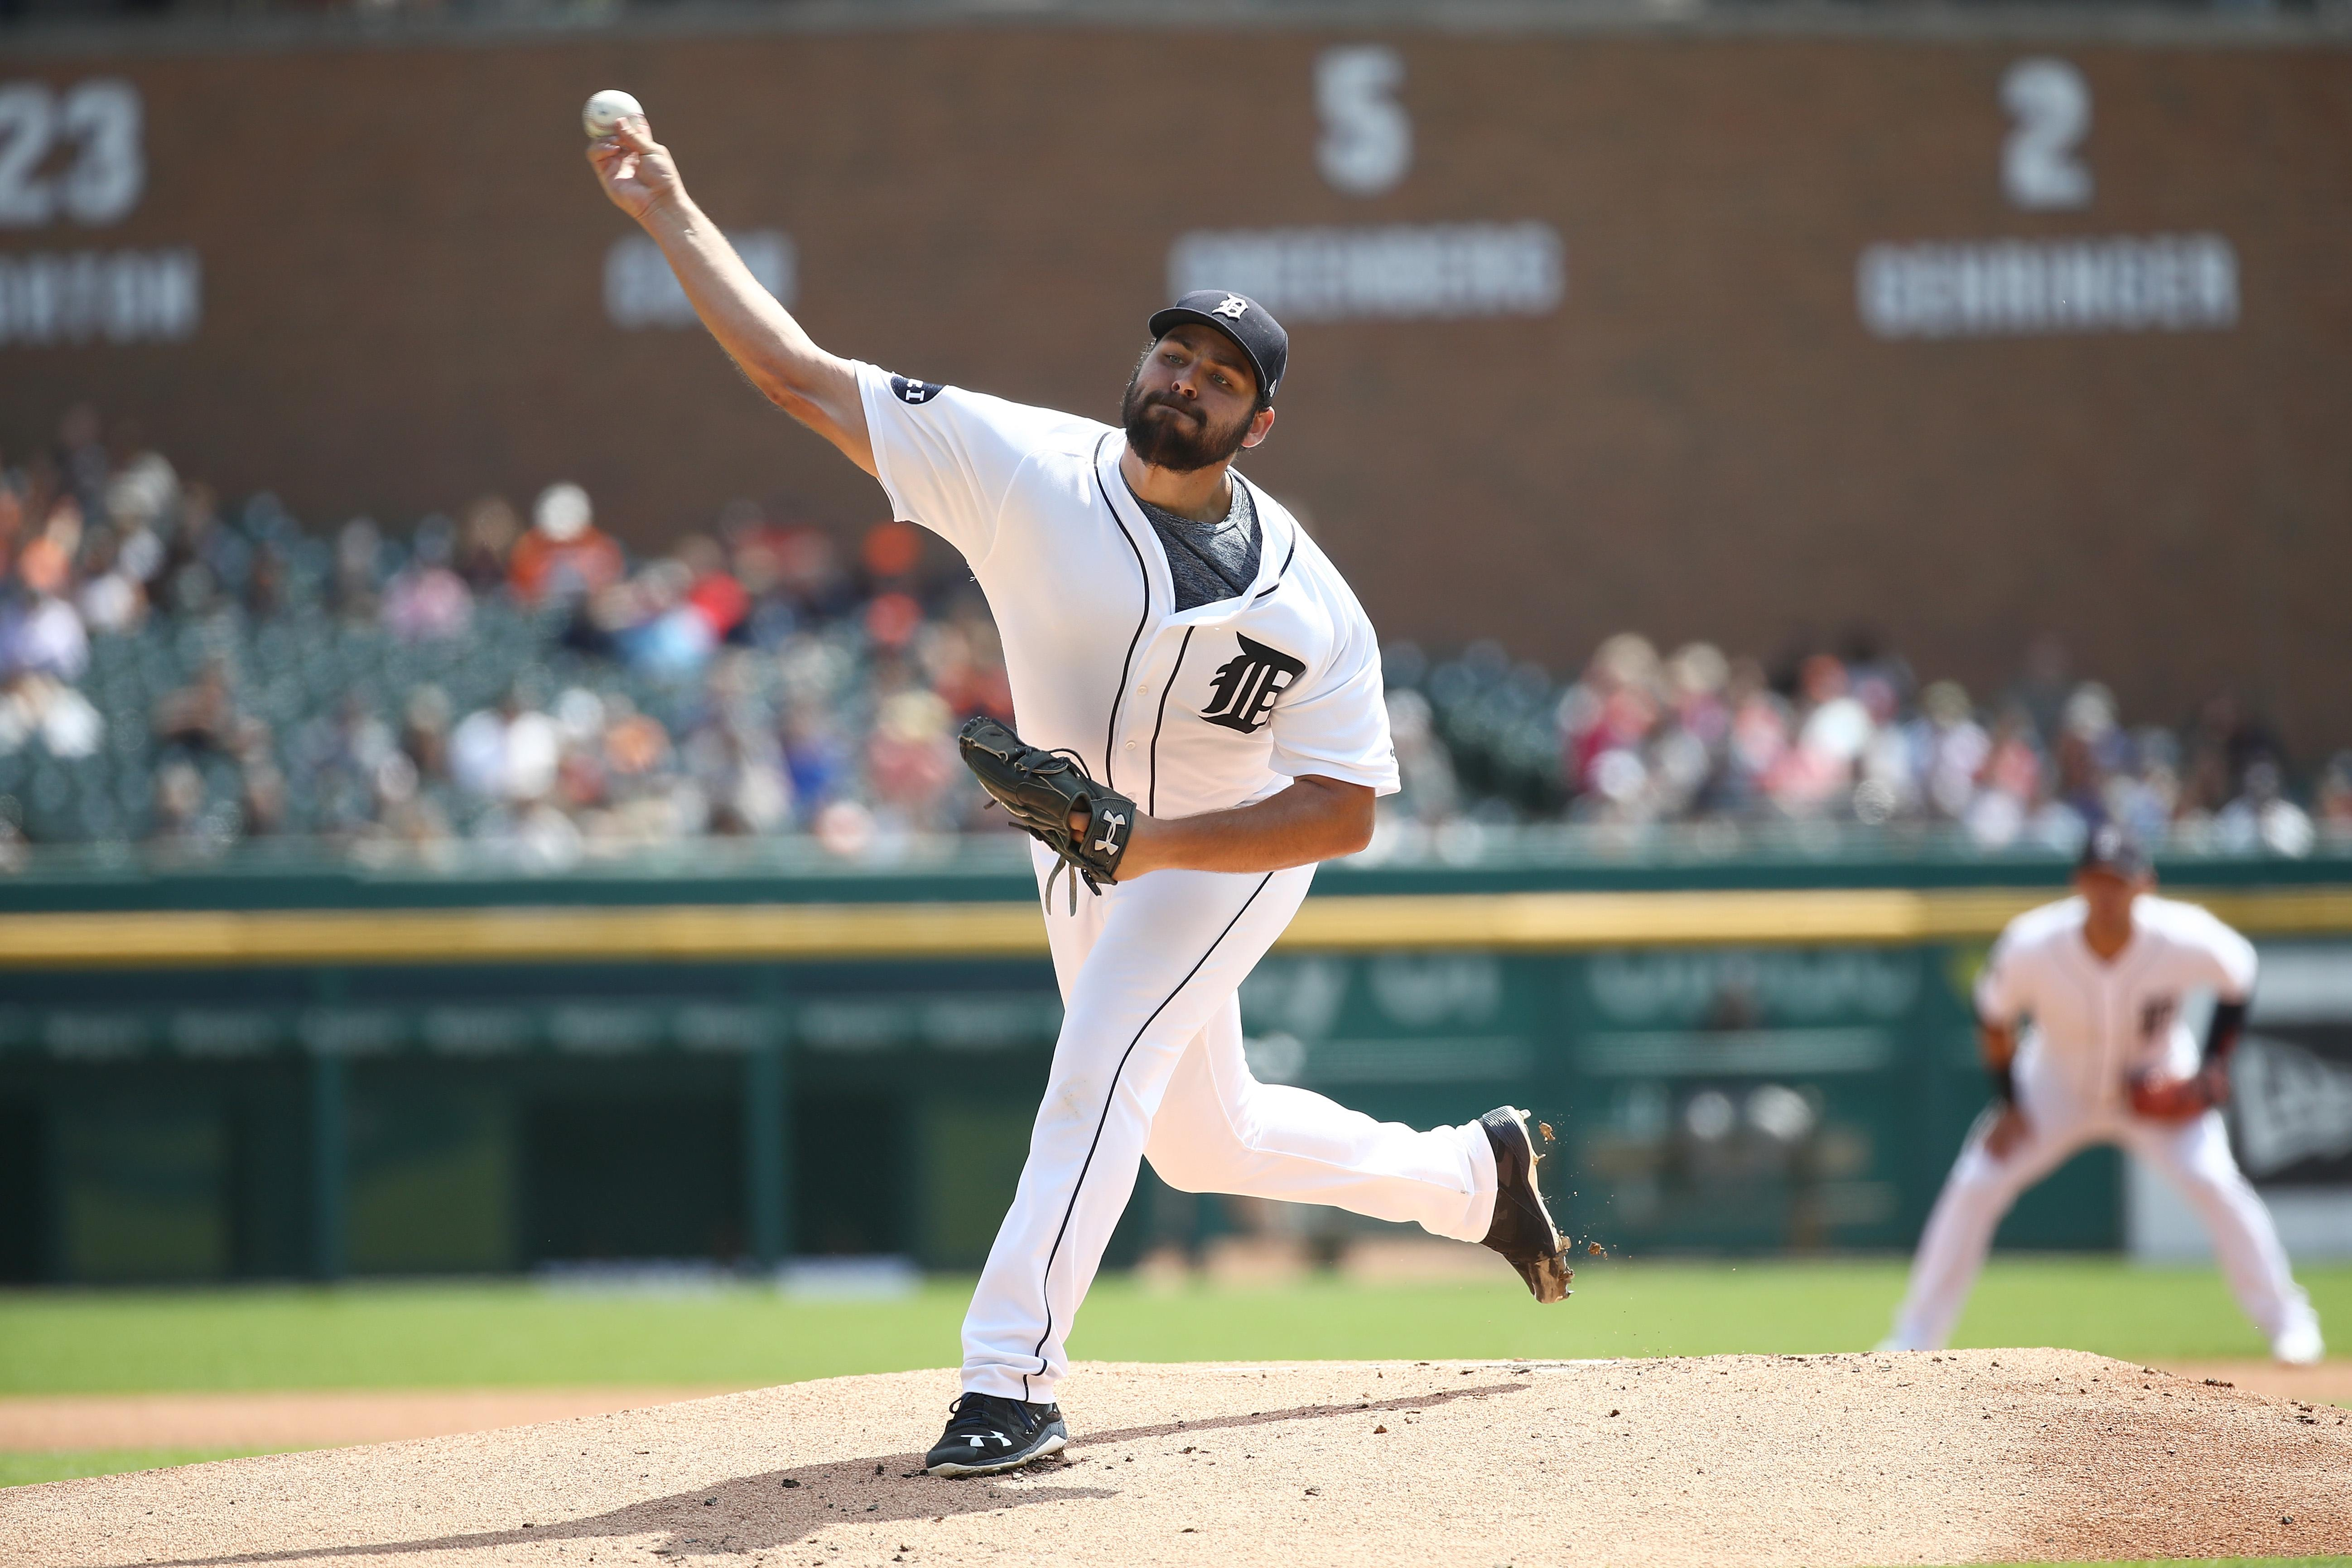 Rangers, Yankees interested in Tigers pitcher Michael Fulmer